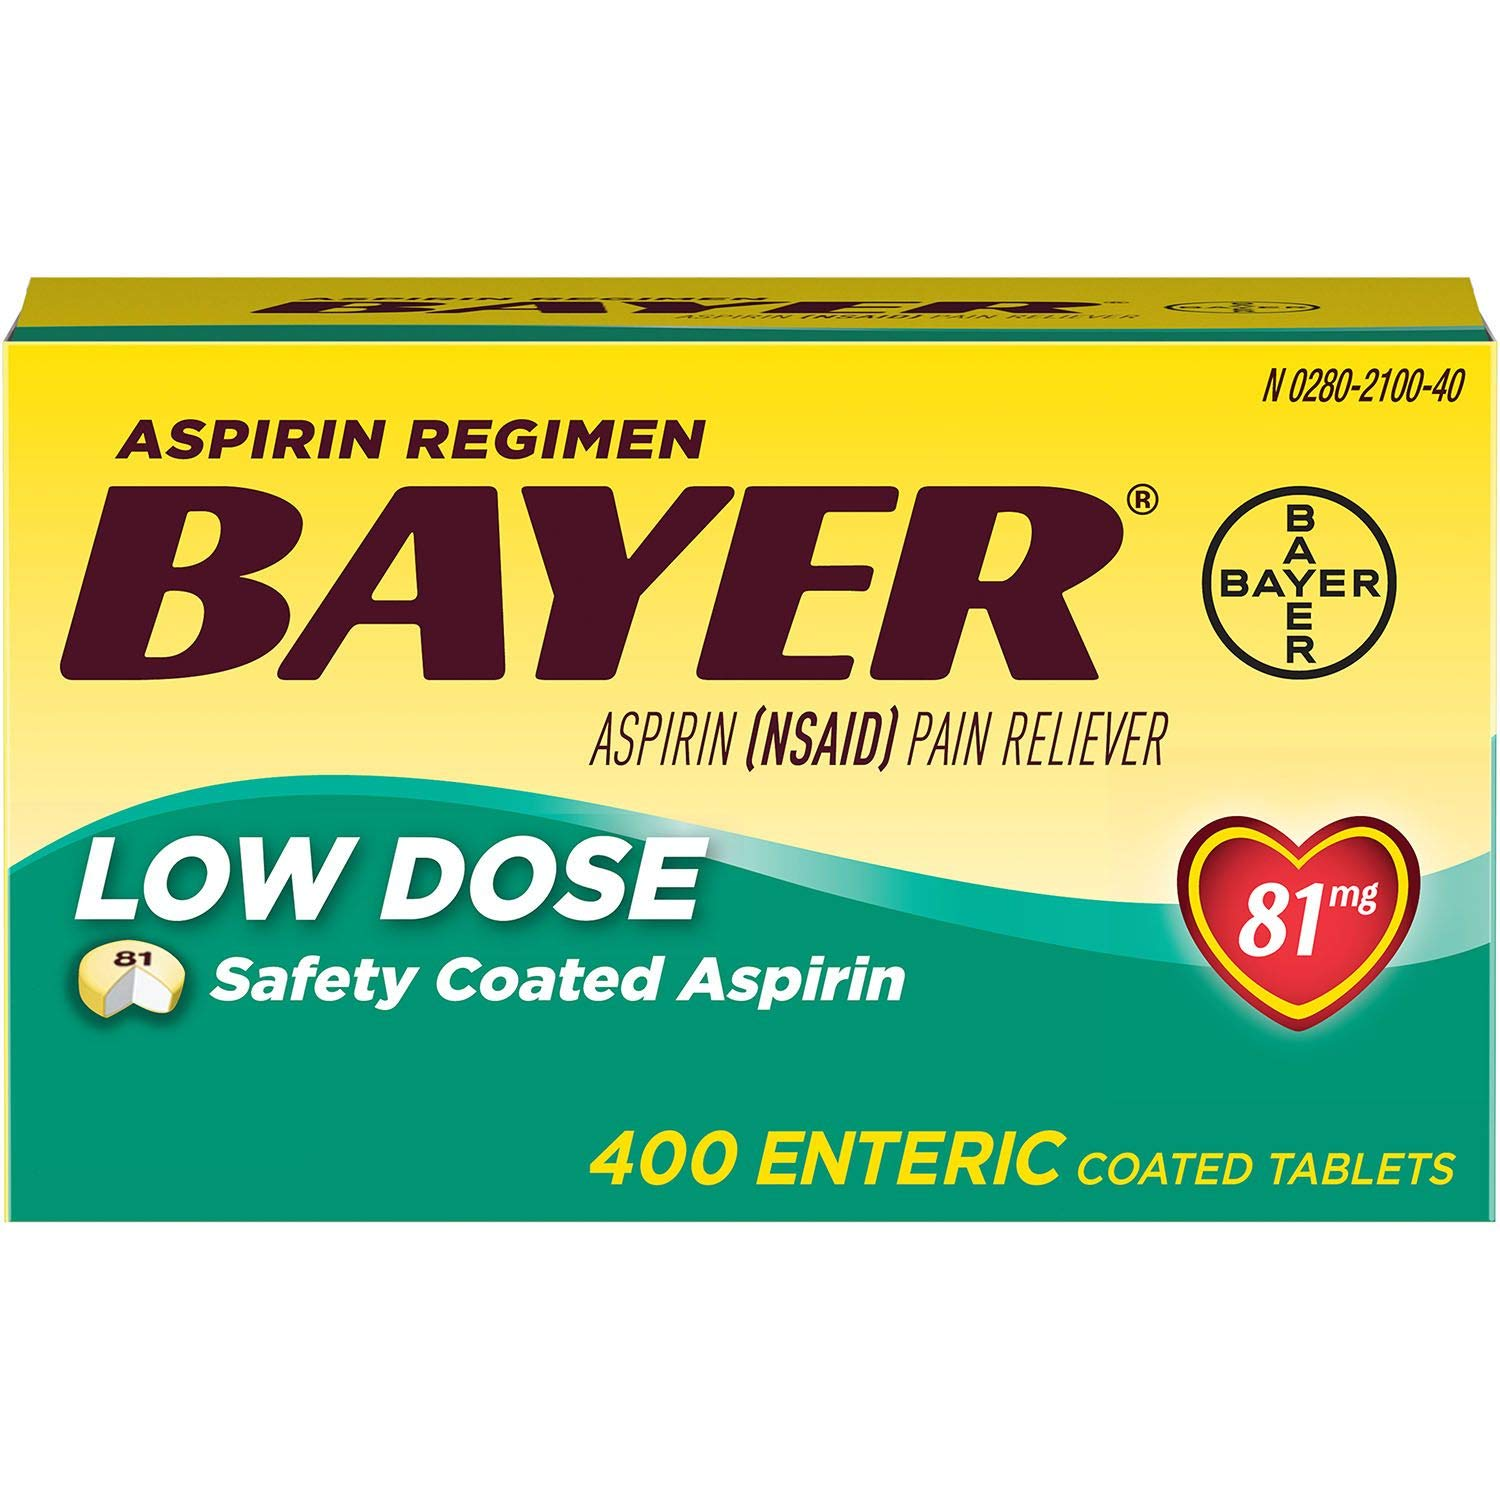 Bayer Low Dose Safety Coated Aspirin 81 mg, Pack of 1, 400 Count by Bayer